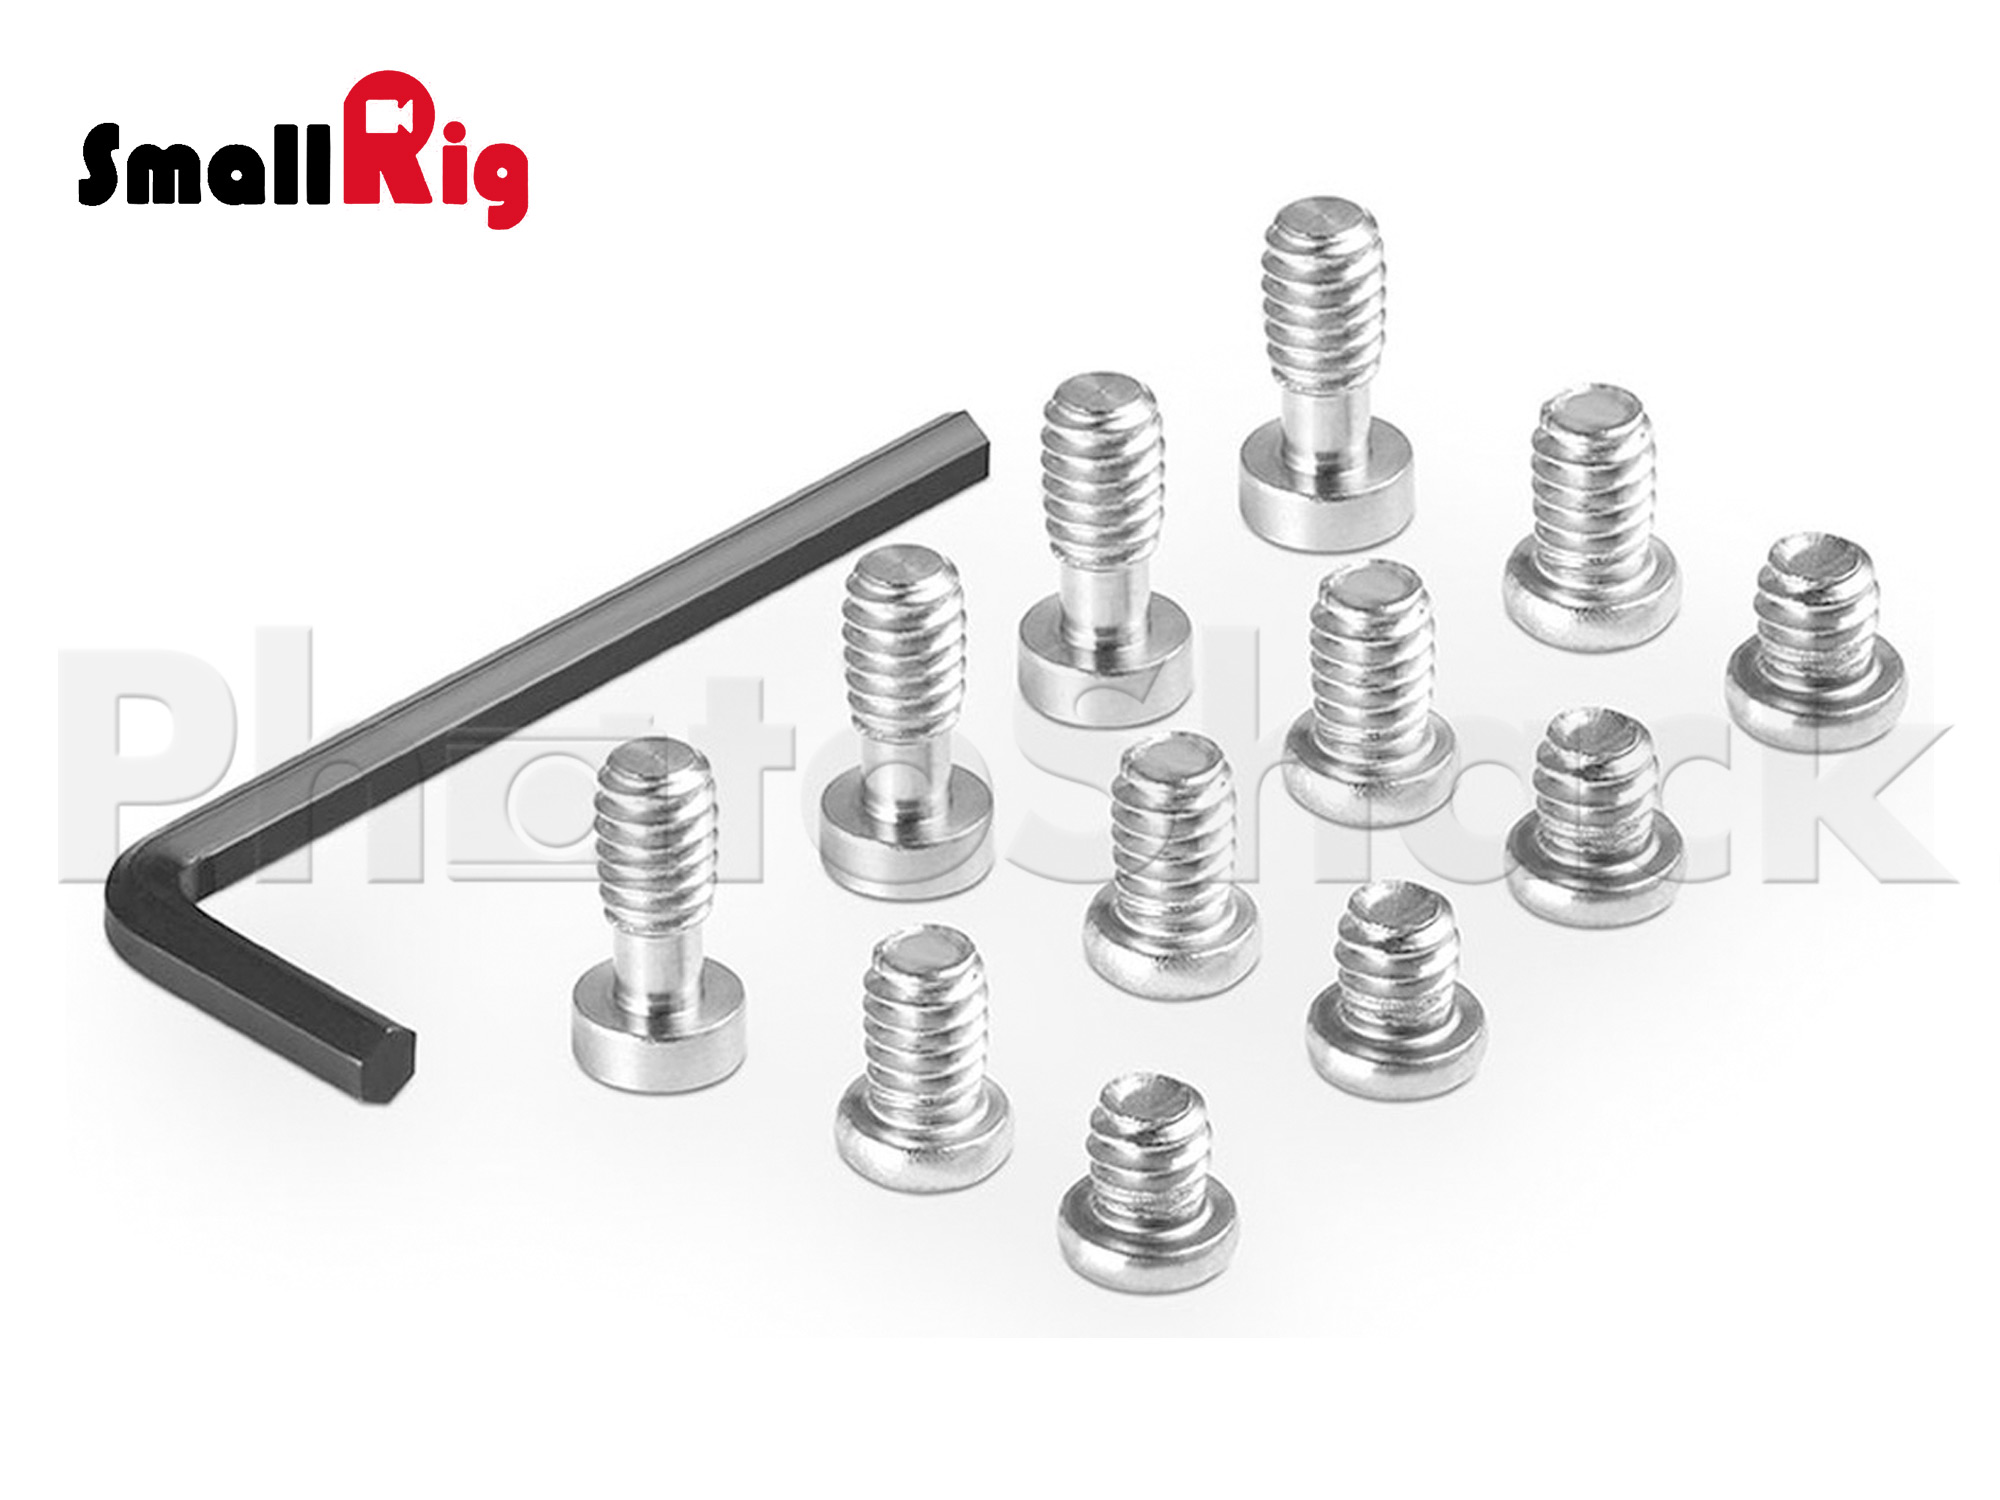 SmallRig Hex Screw Pack - 12 pcs